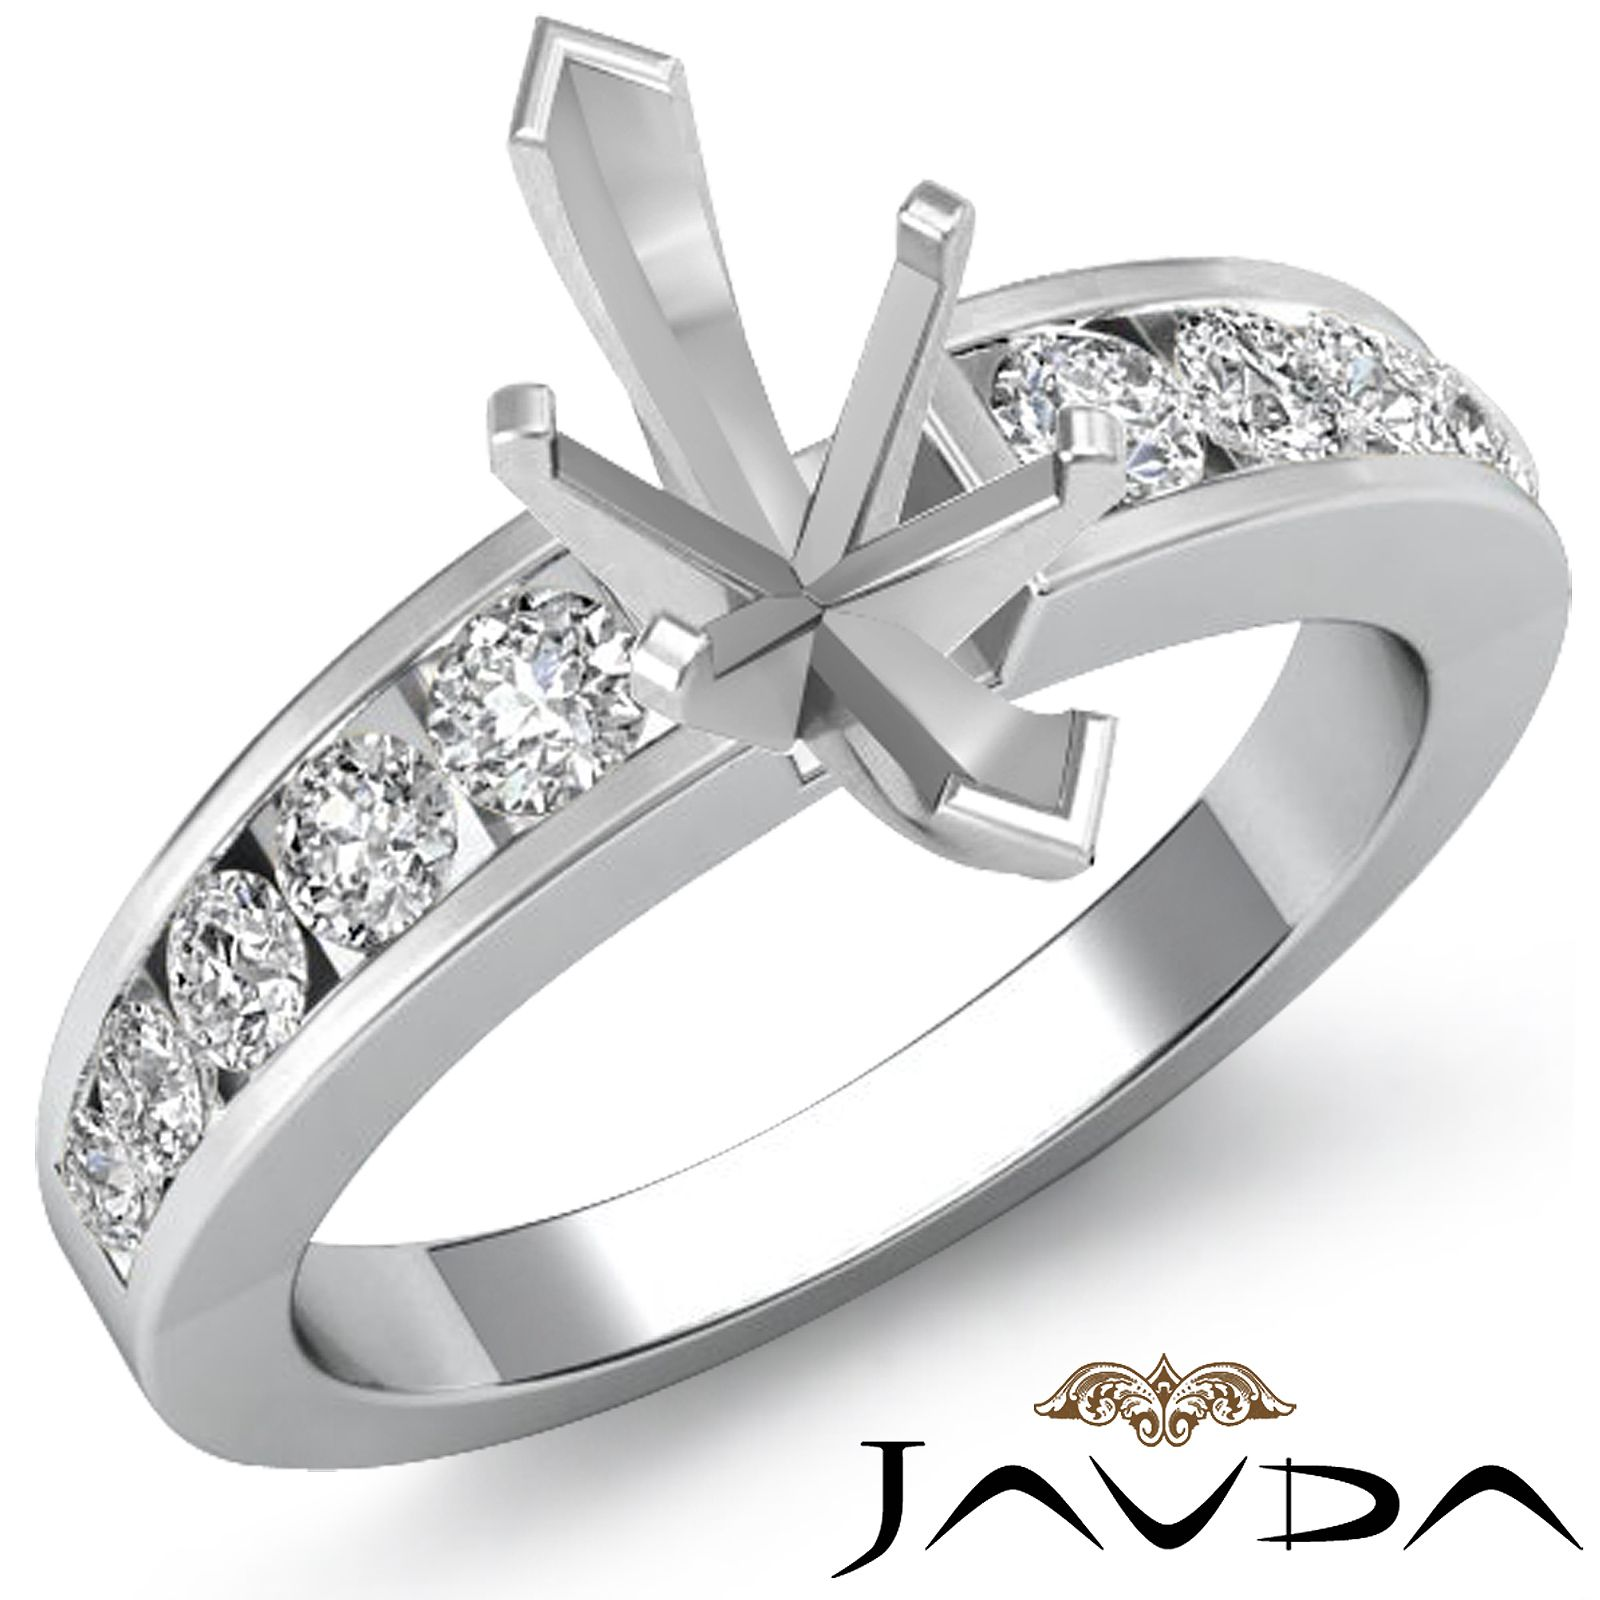 ring wedding engagement bands designer settings jewellery matching